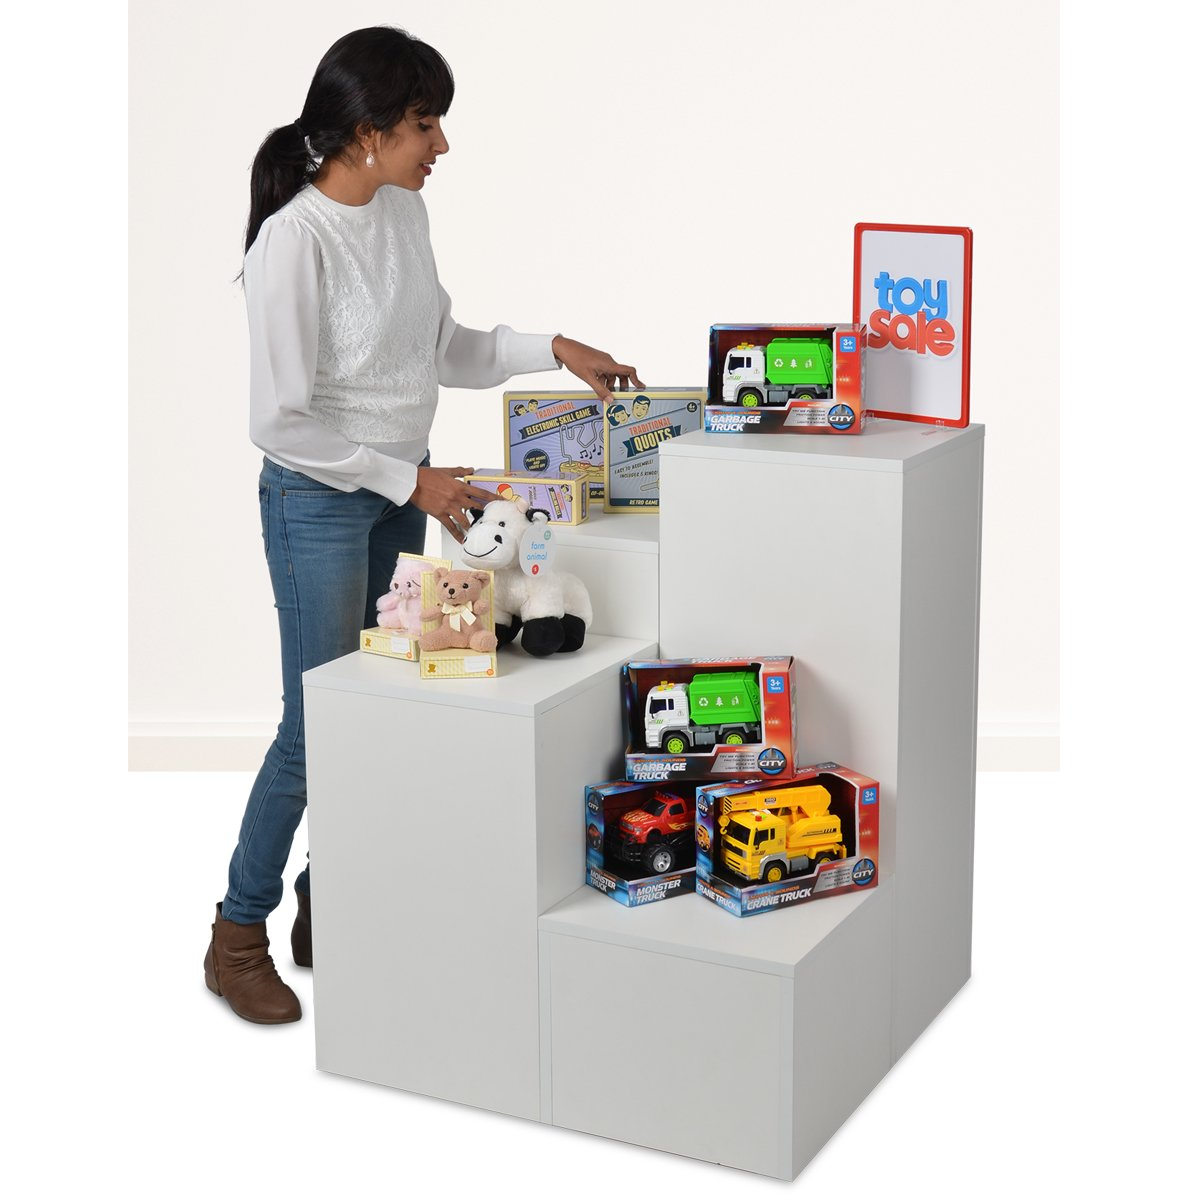 Plinths are a great way to highlight products, they come in a range of different heights allowing you to add dimension and aesthetic appeal to your store displays.   Shop our range today! https://t.co/294T5RGBwh https://t.co/jCTGbyvQ1E